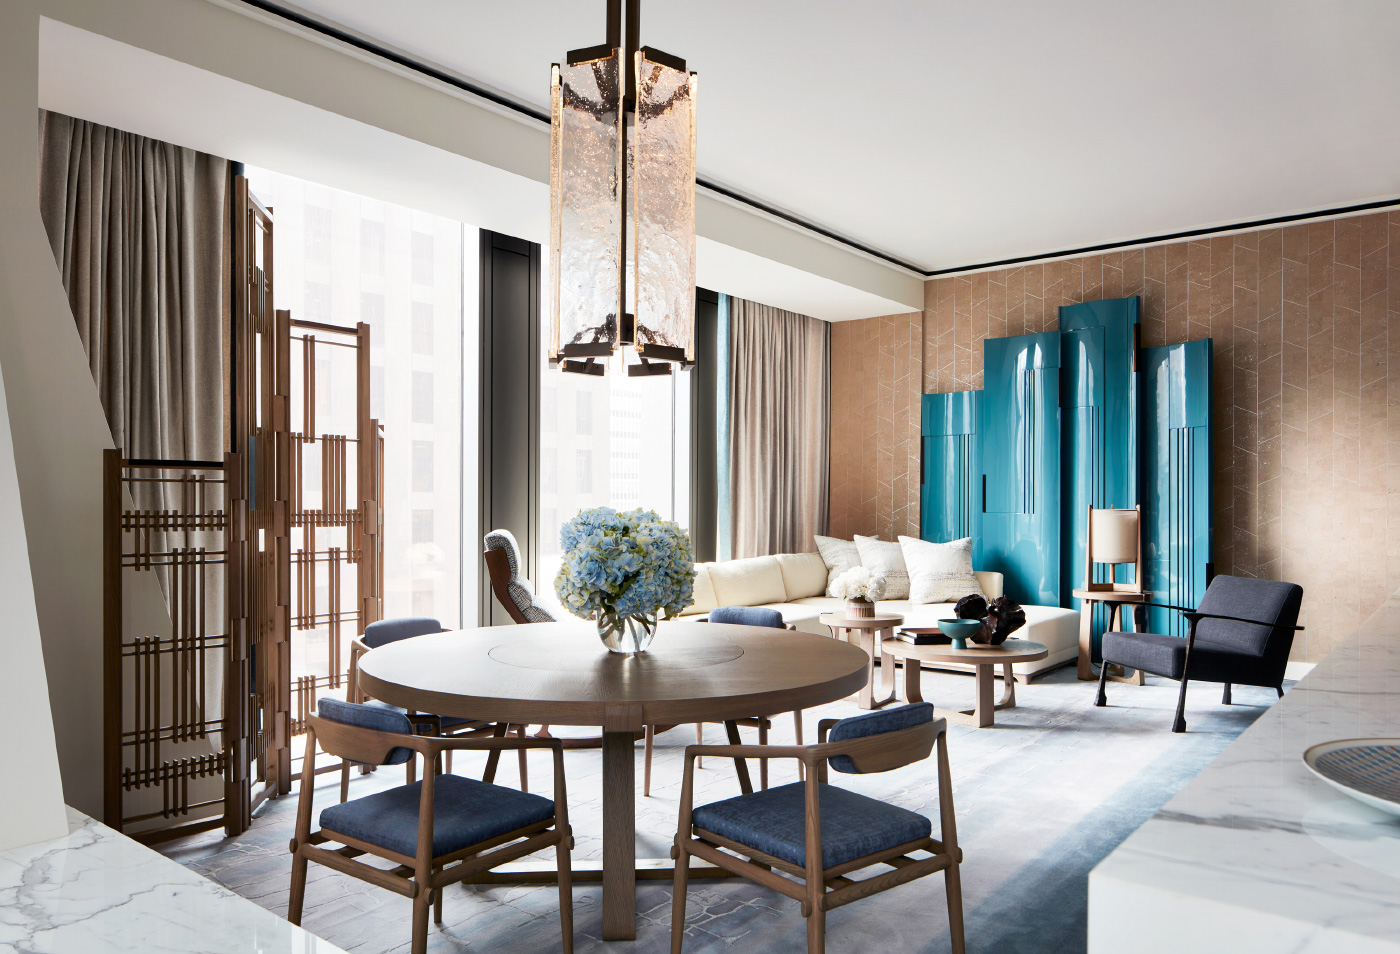 Interior photo of a sophisticated apartment space in the new MoMA tower